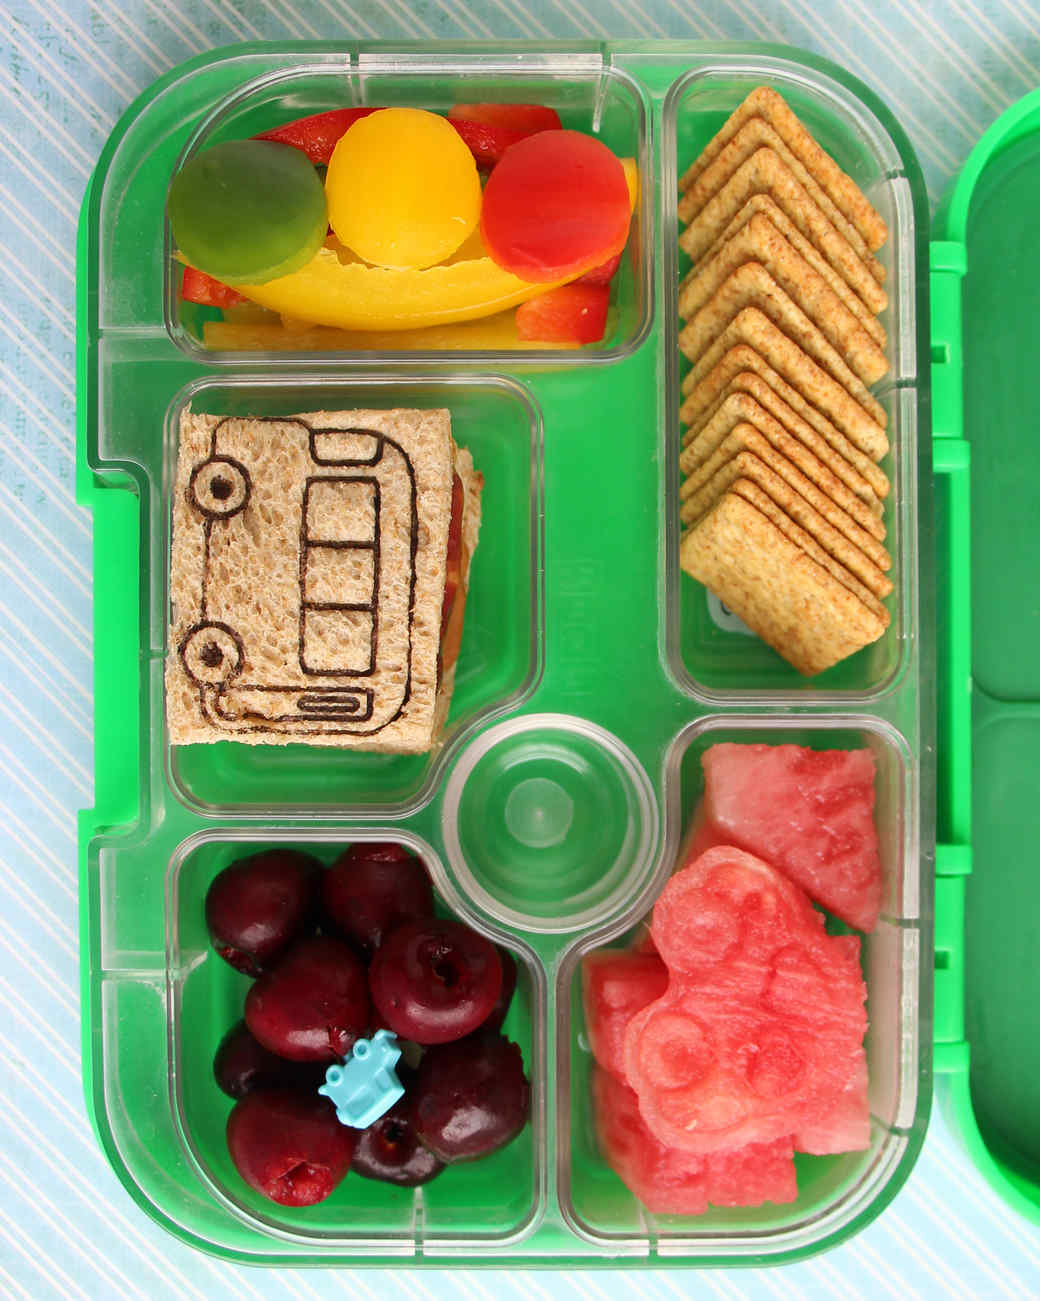 12 super cool kids 39 bento box lunches you can actually make martha stewart. Black Bedroom Furniture Sets. Home Design Ideas